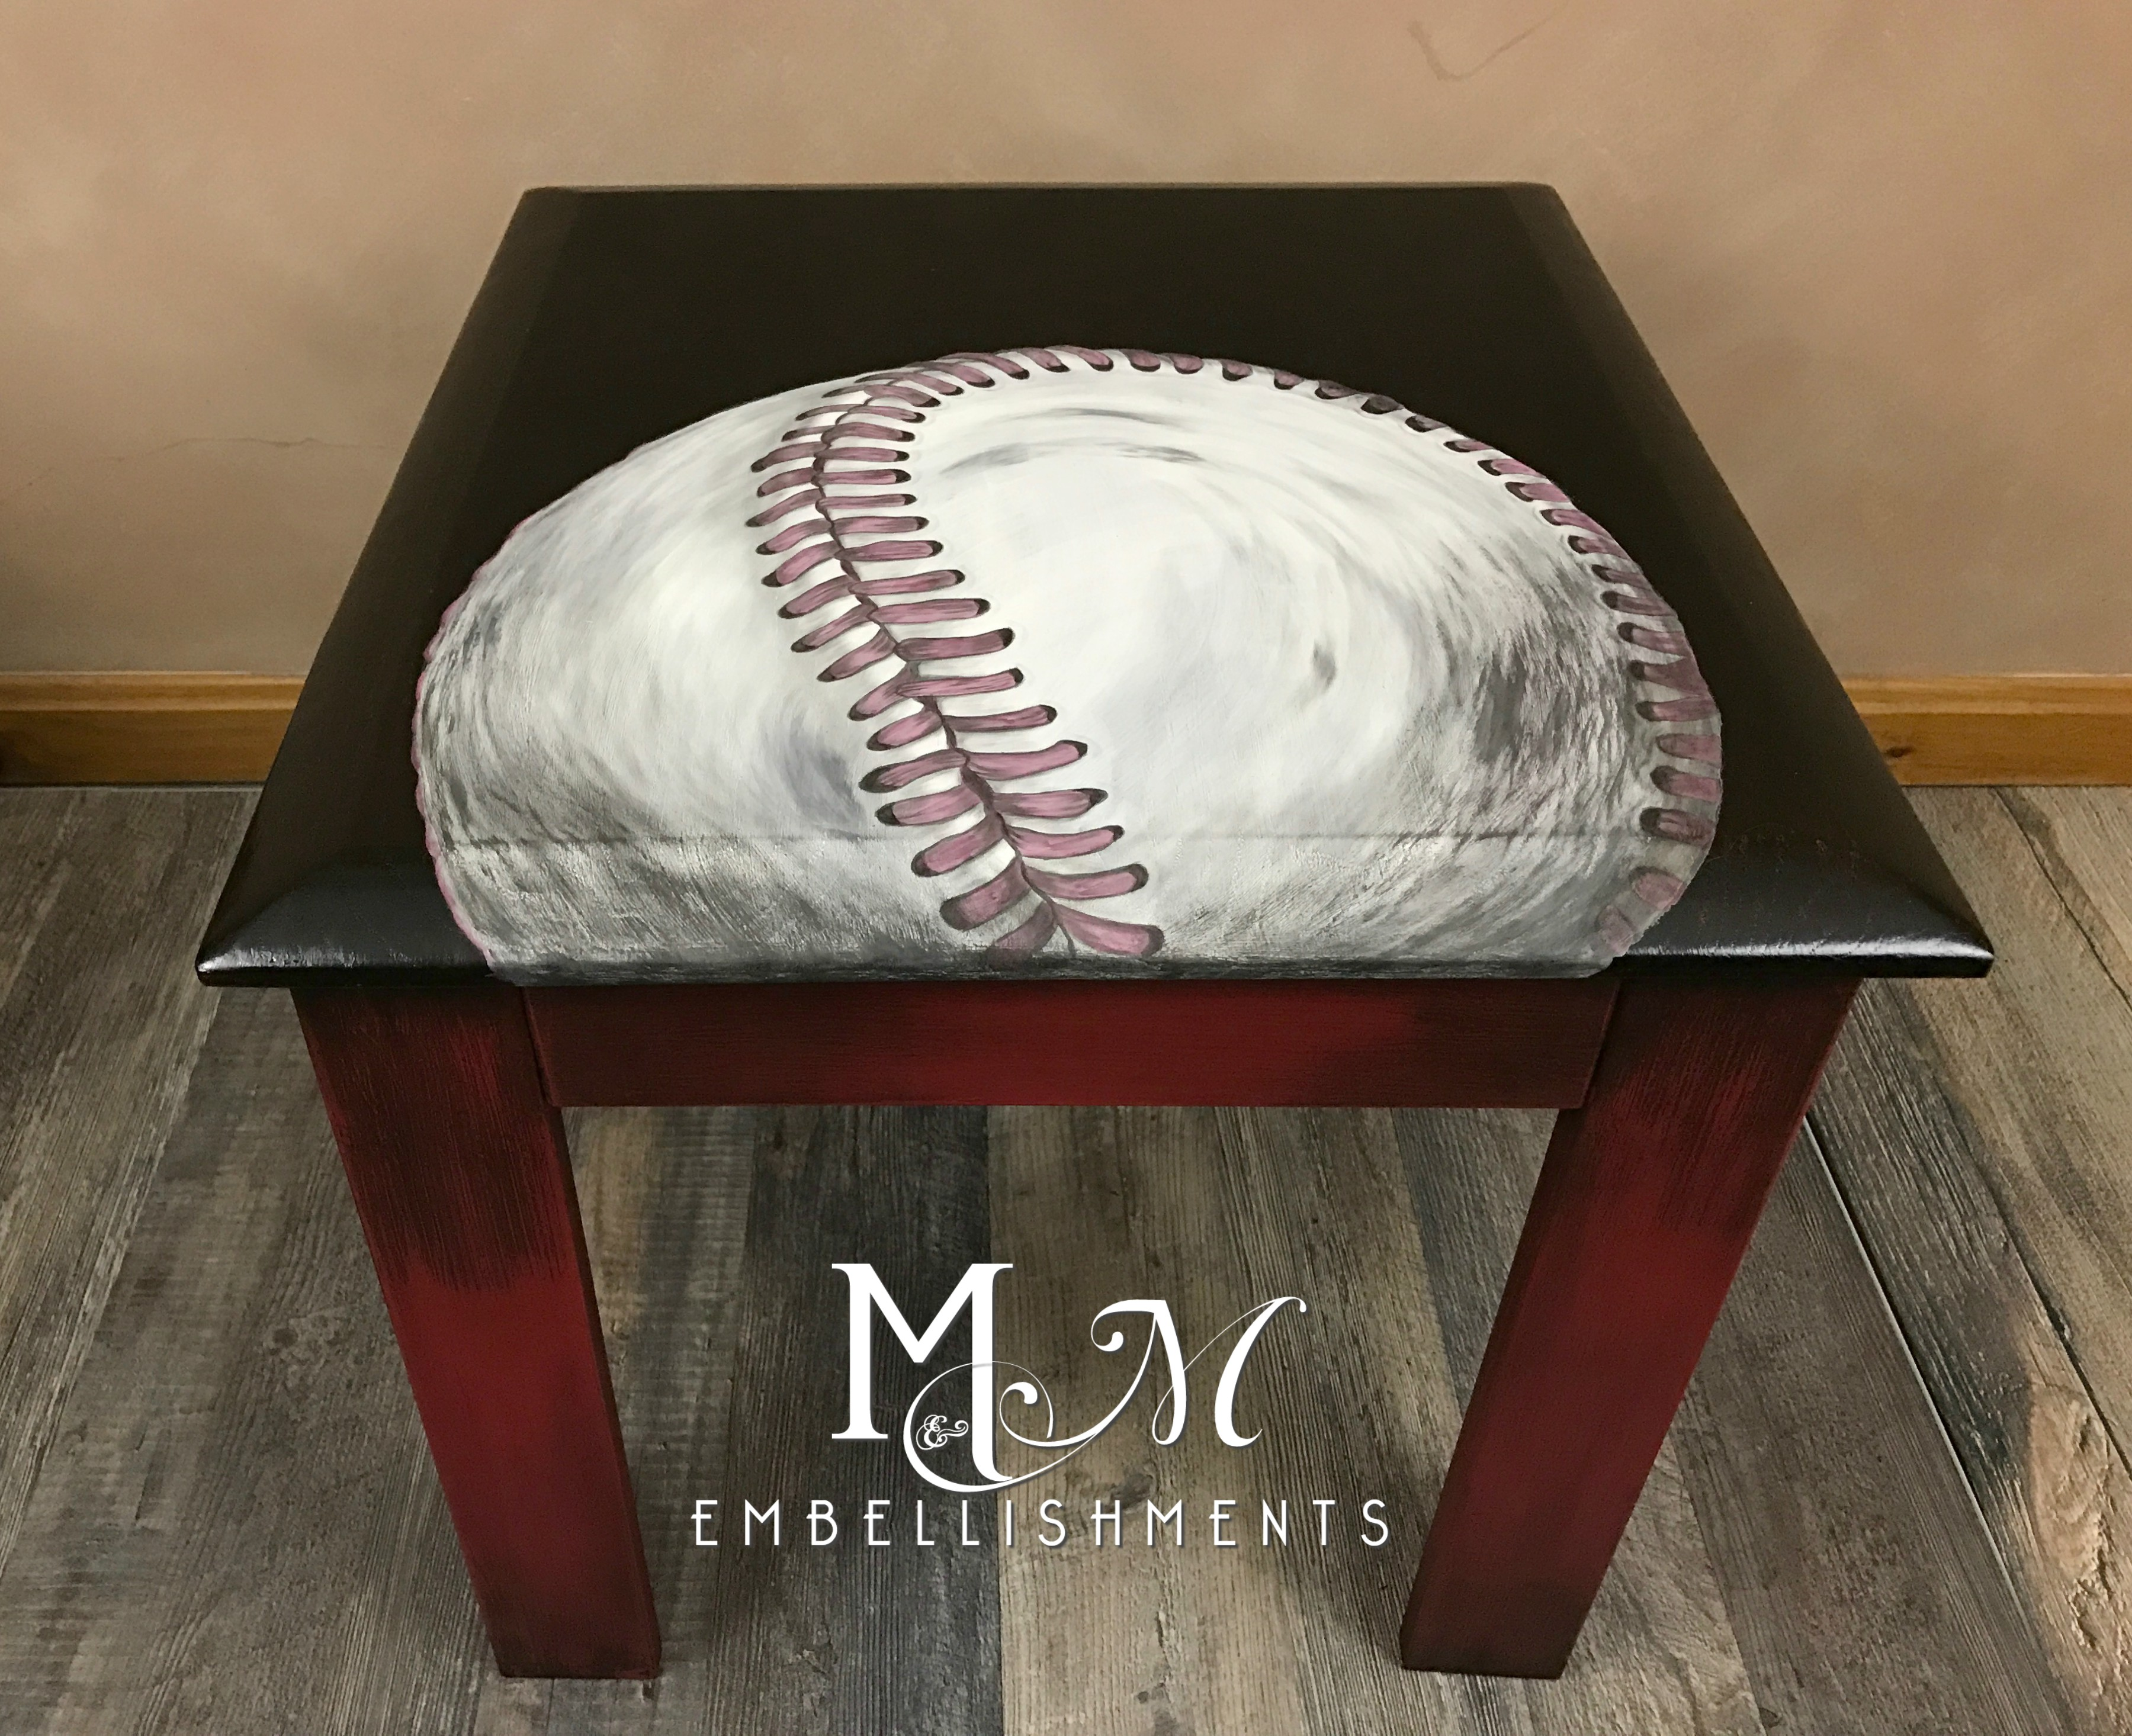 hand painted baseball table